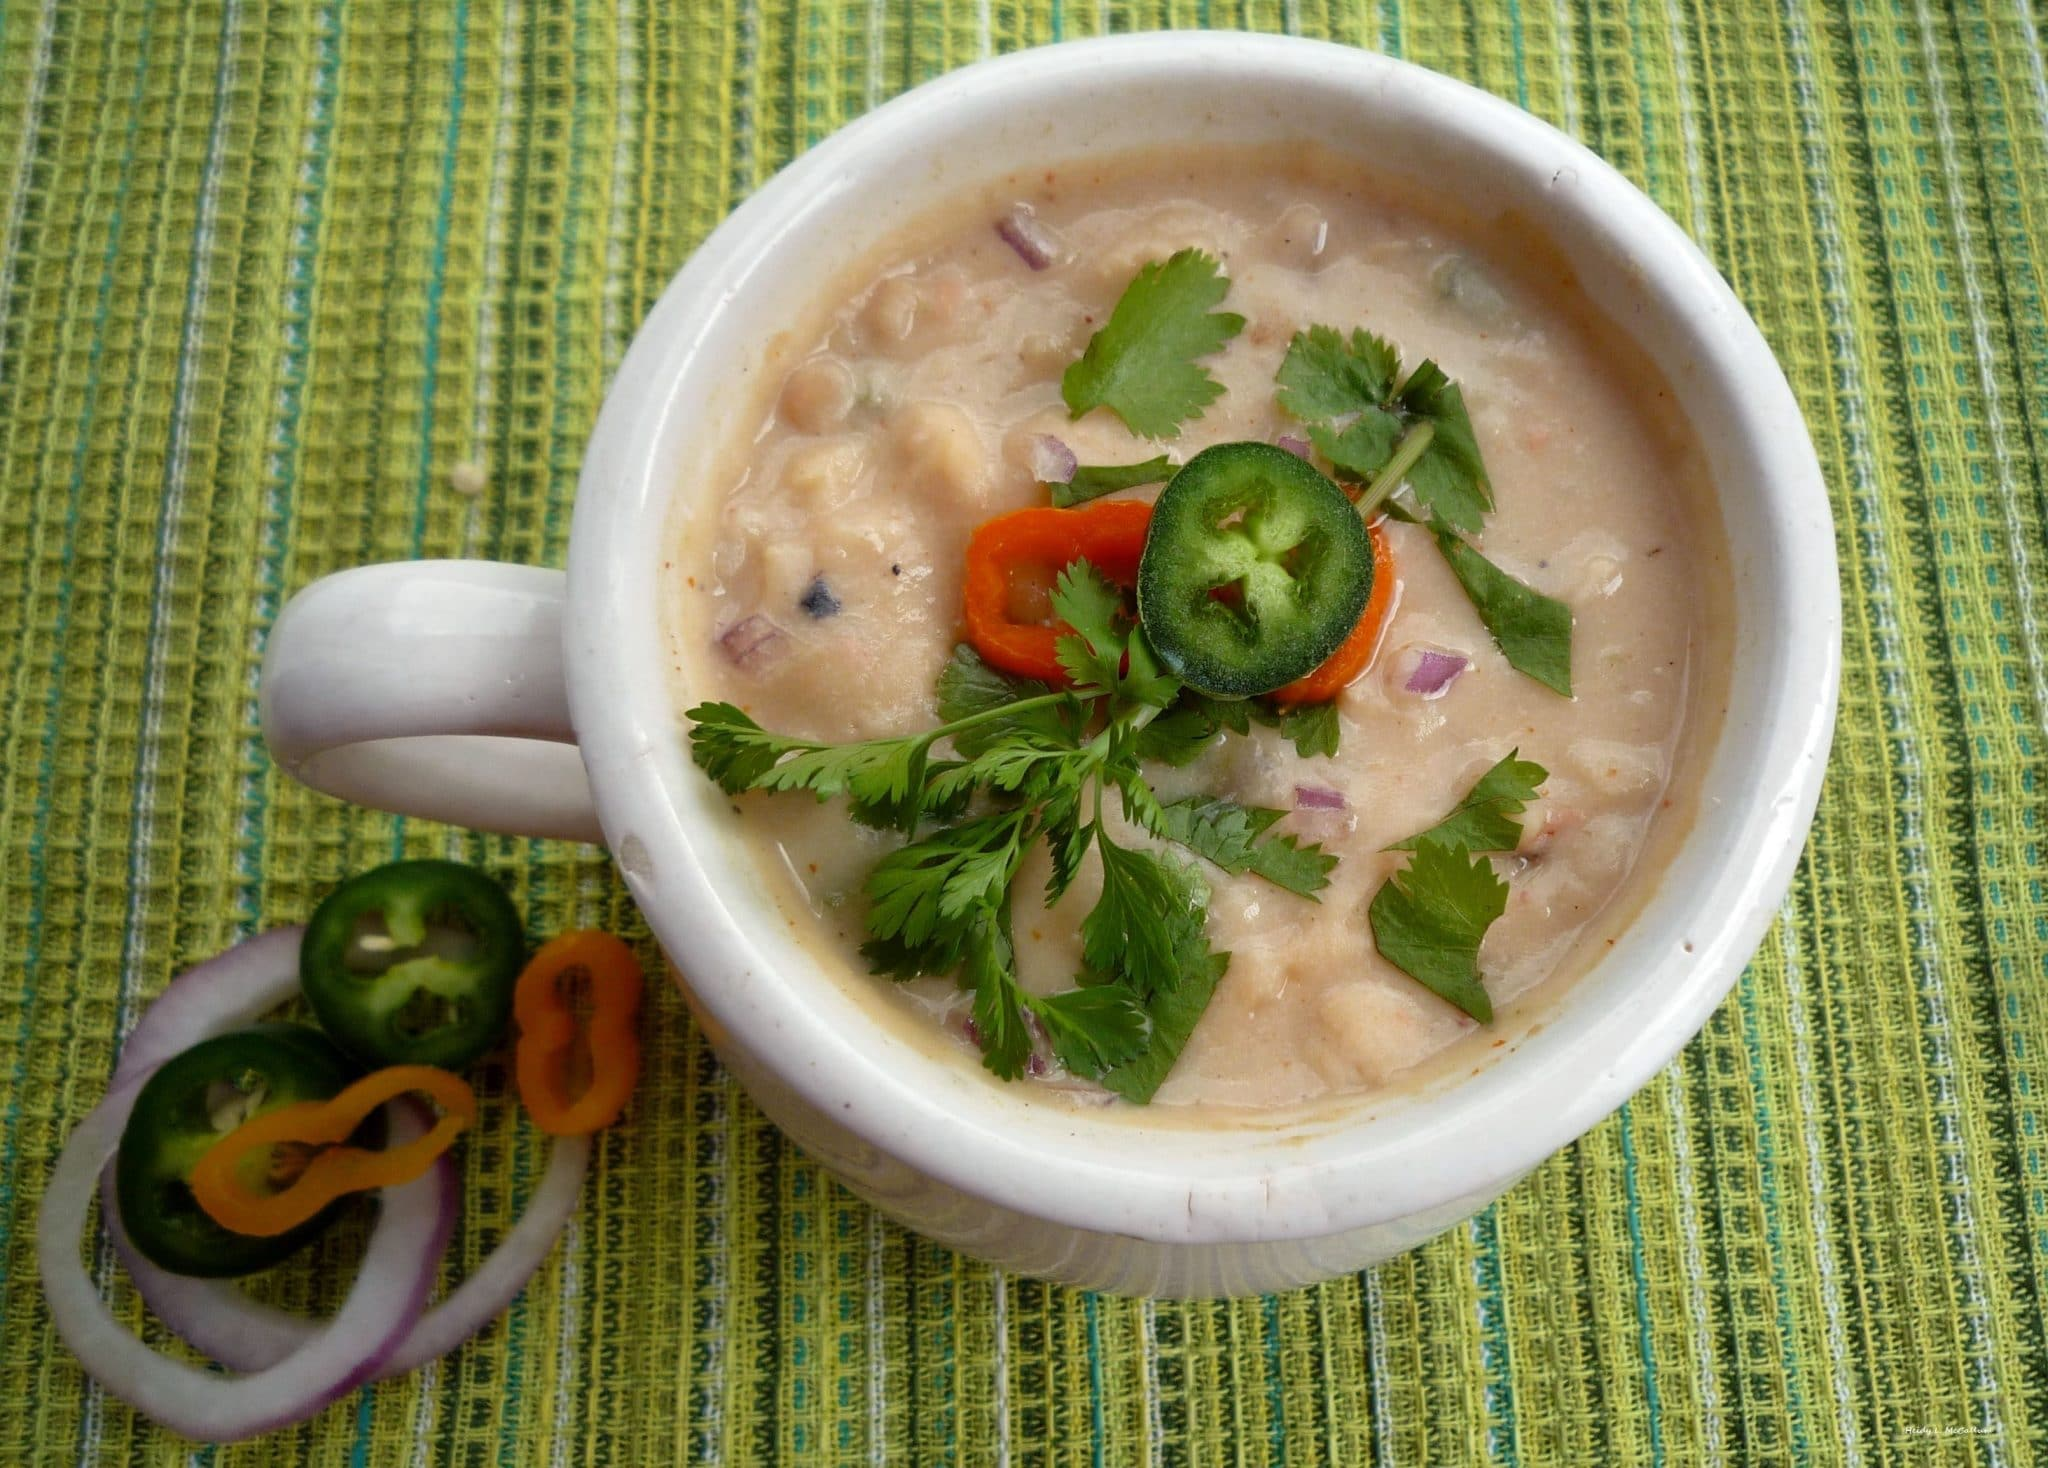 White Chili with Chicken_Recipe and Photo by Heidy L. McCallum_The McCallums Shamrock Patch